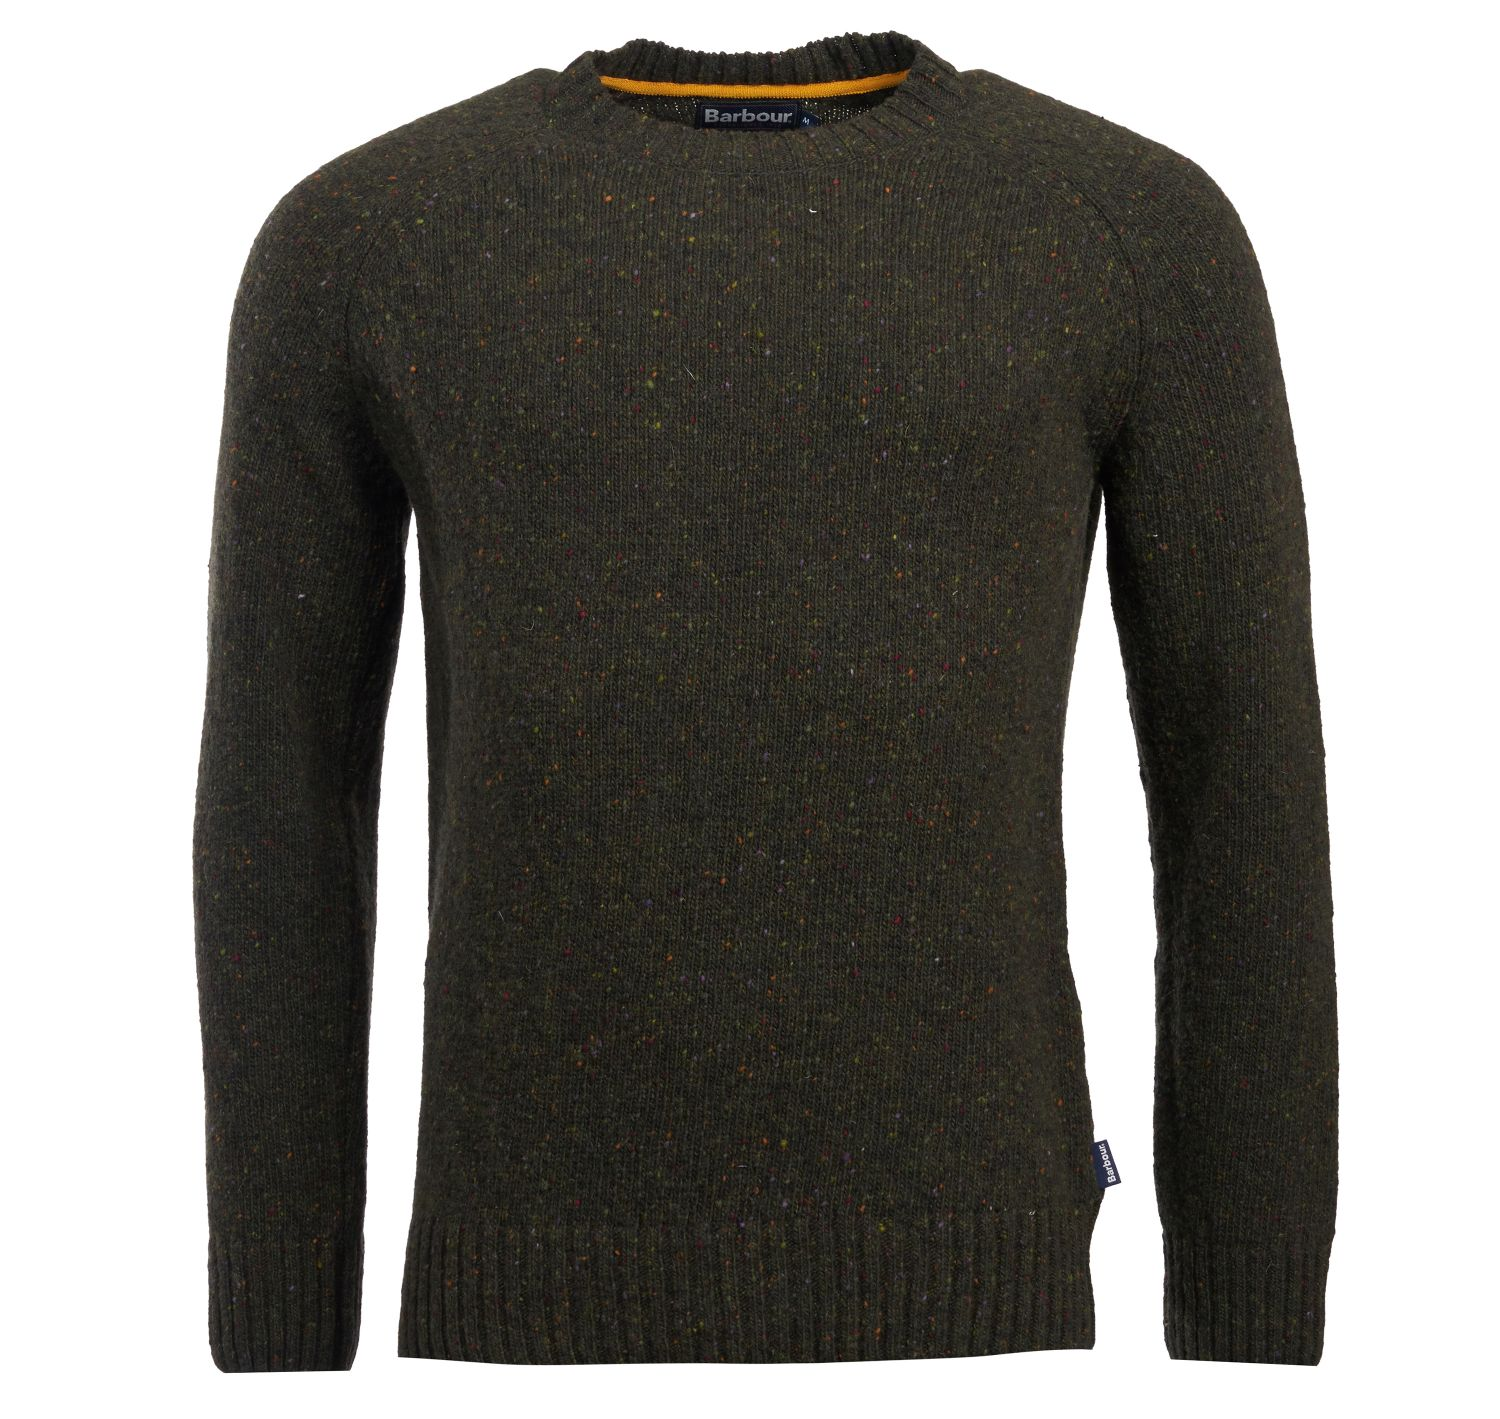 Barbour Netherton Crew Neck Sweater Forest Barbour Lifestyle: from the Classic capsule